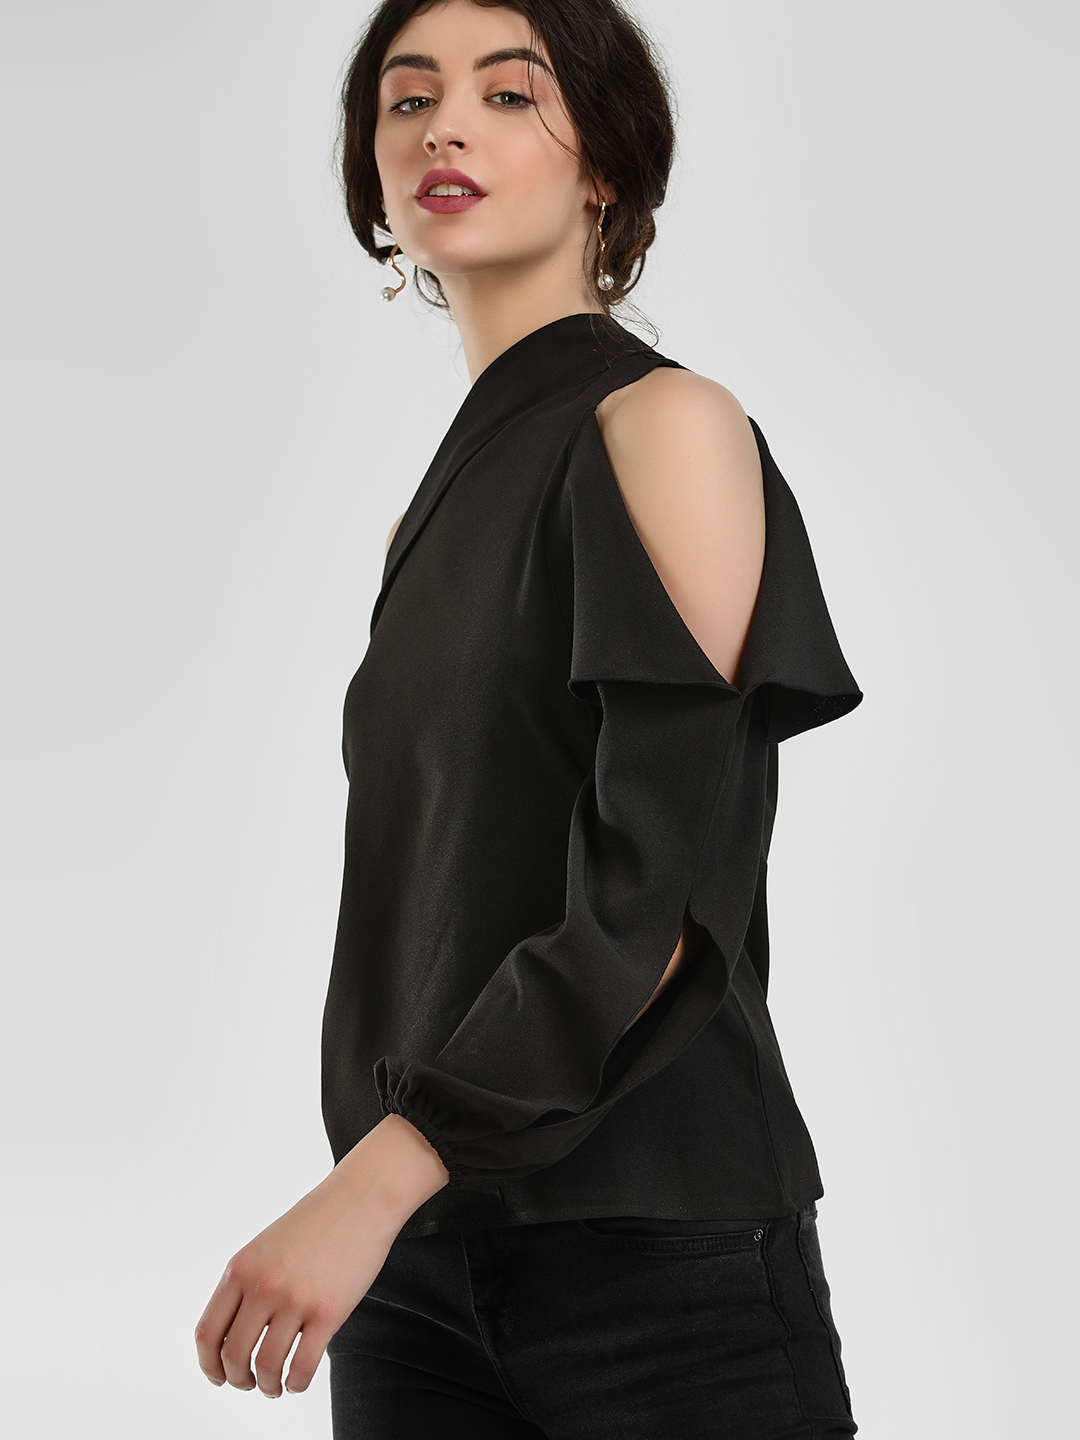 Ri-Dress Black One Shoulder Cutout Blouse 1